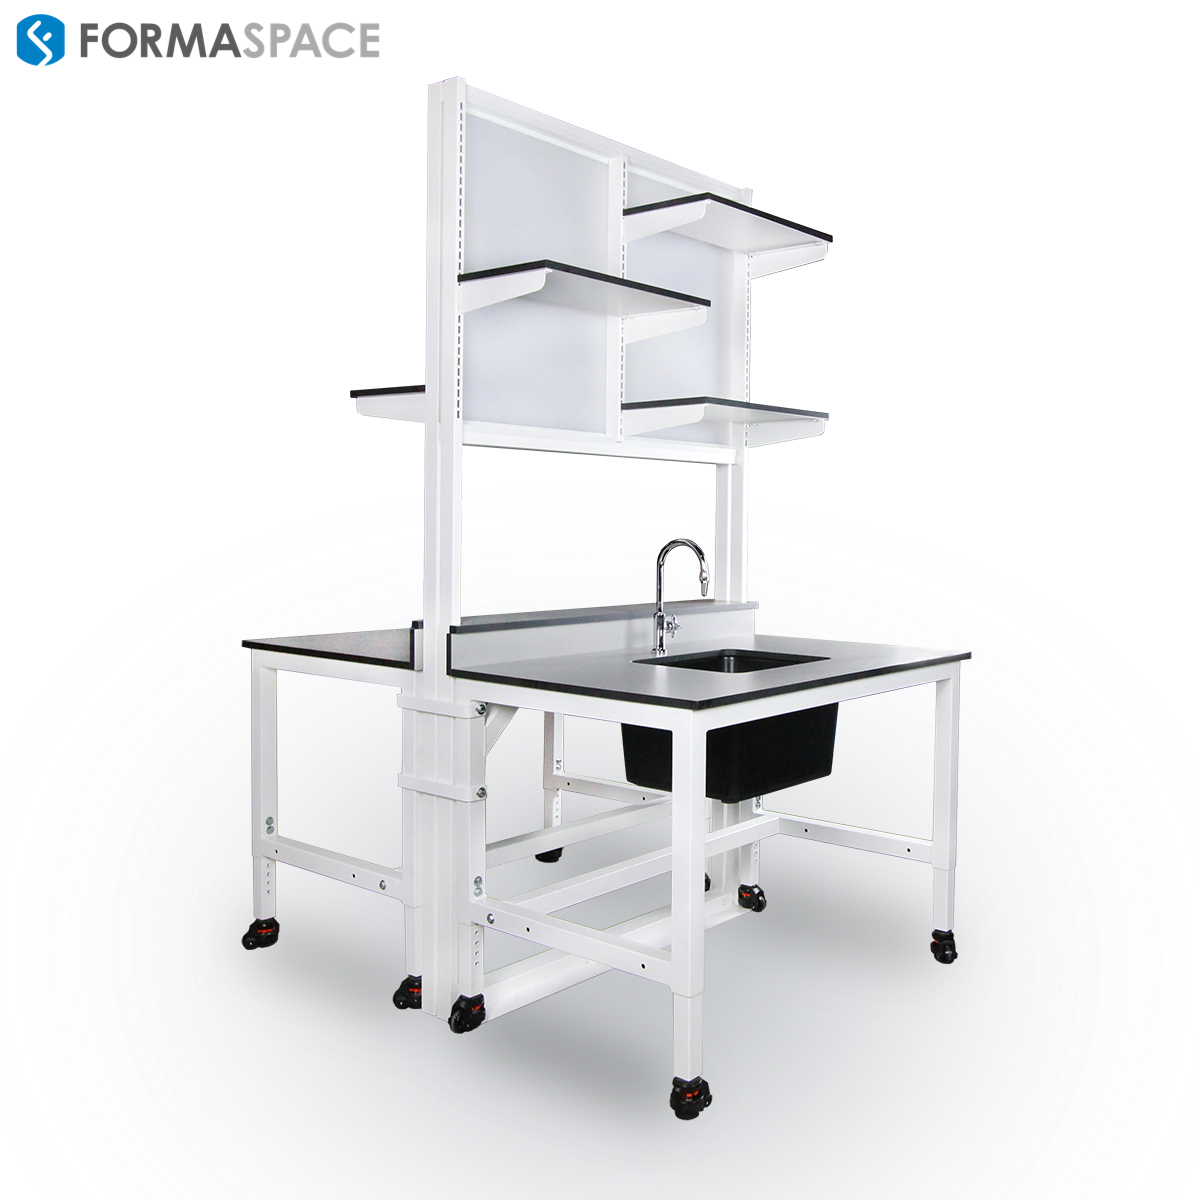 FabWall™ Laboratory Partition Modules